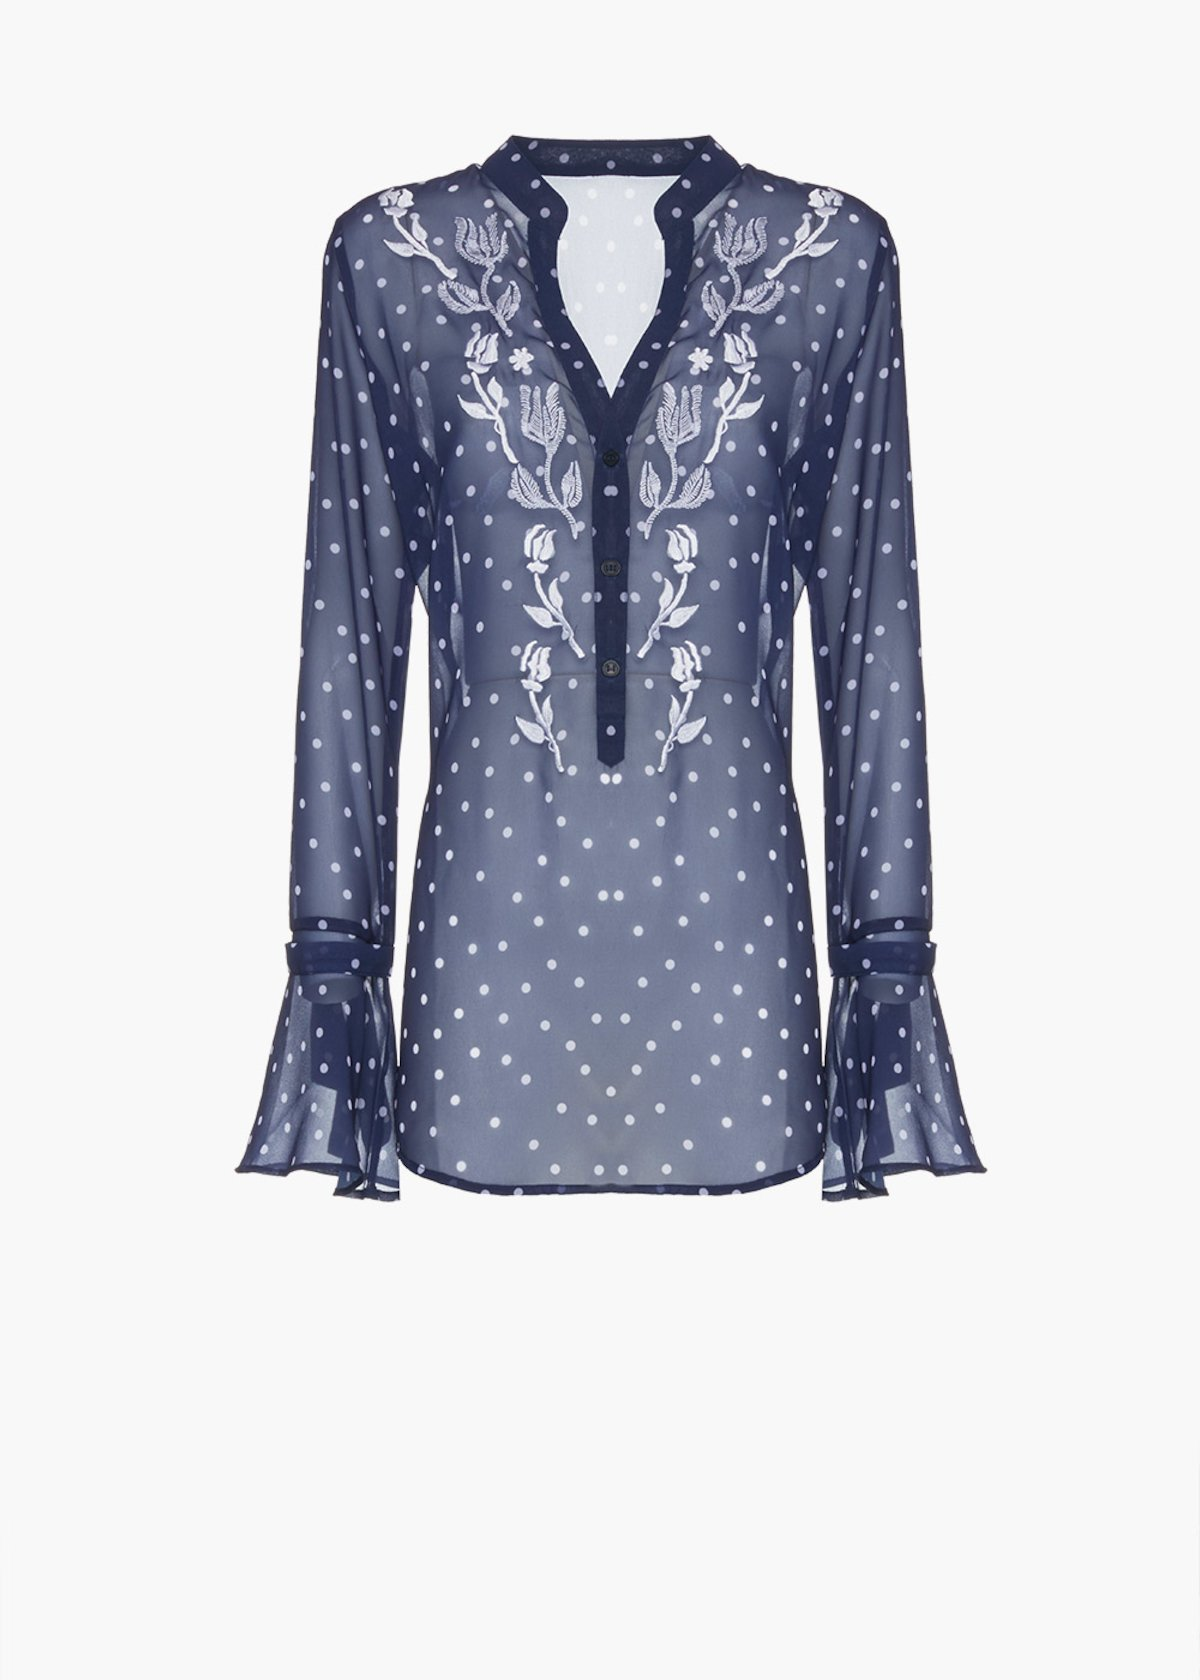 Chretien blouse in georgette with flower embroidery on the front